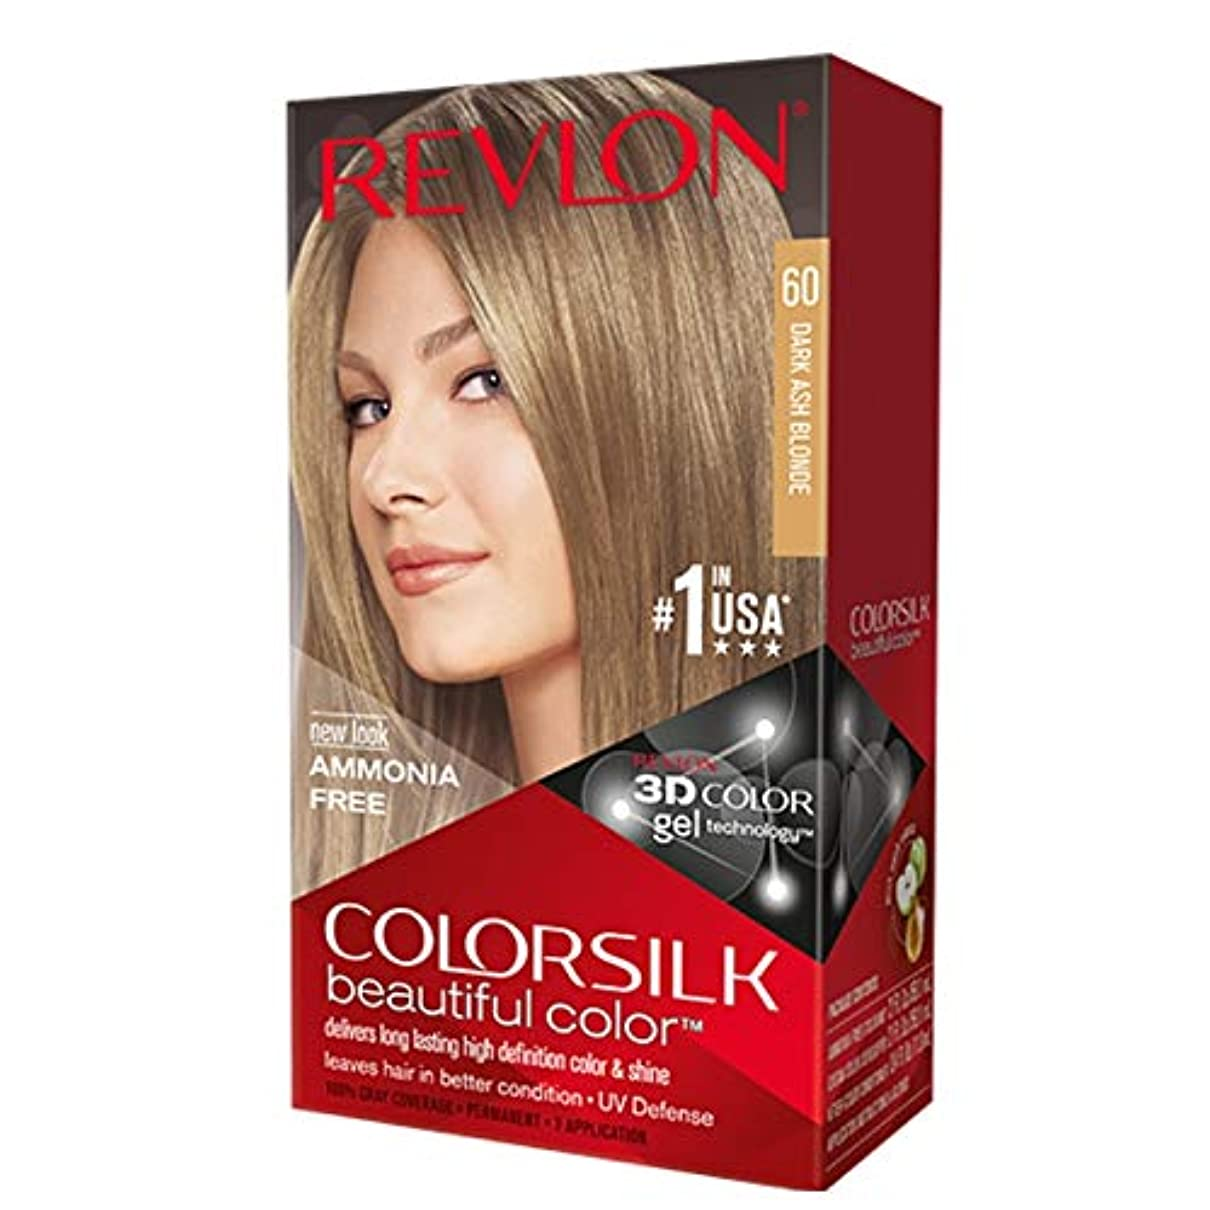 シマウマ出力ミュウミュウ海外直送肘 Revlon Colorsilk Natural Hair Color 6A Dark Ash Blonde, 6A Dark Ash Blonde each